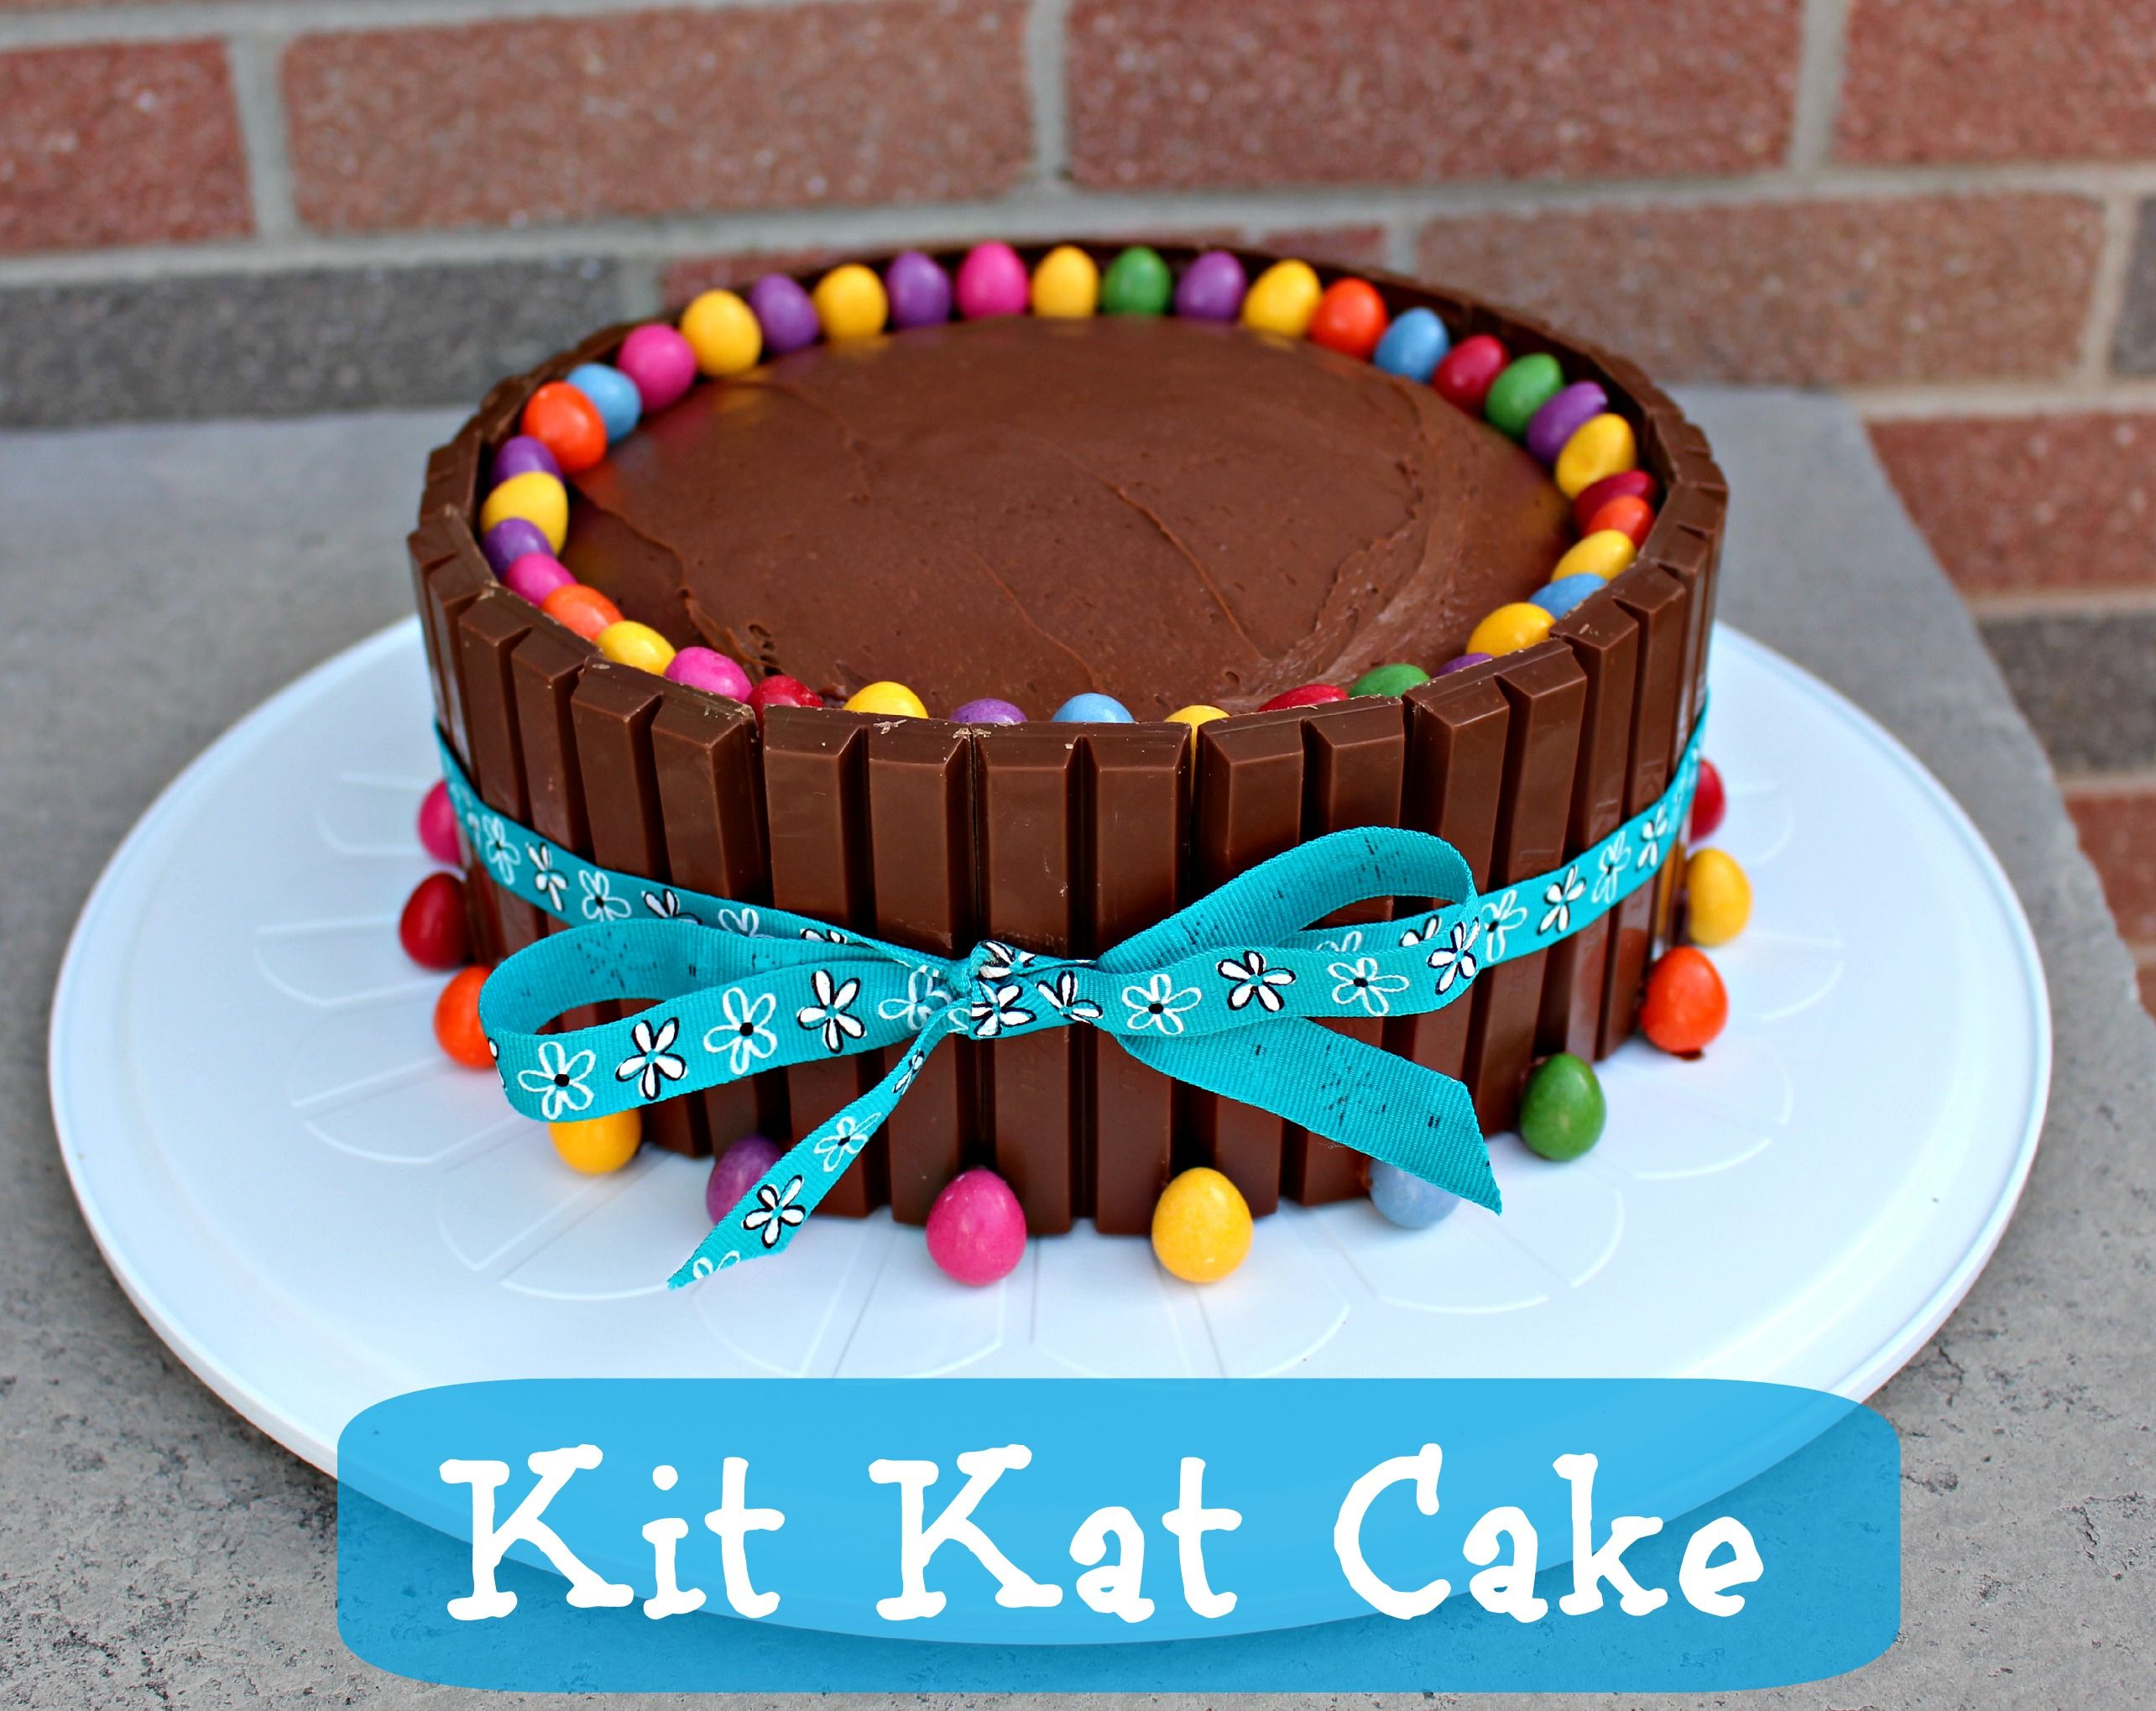 Easy Cake Decorating Ideas For Boy Birthday : Kit Kat Cake Recipe Cake birthday, Birthday cakes and Teen